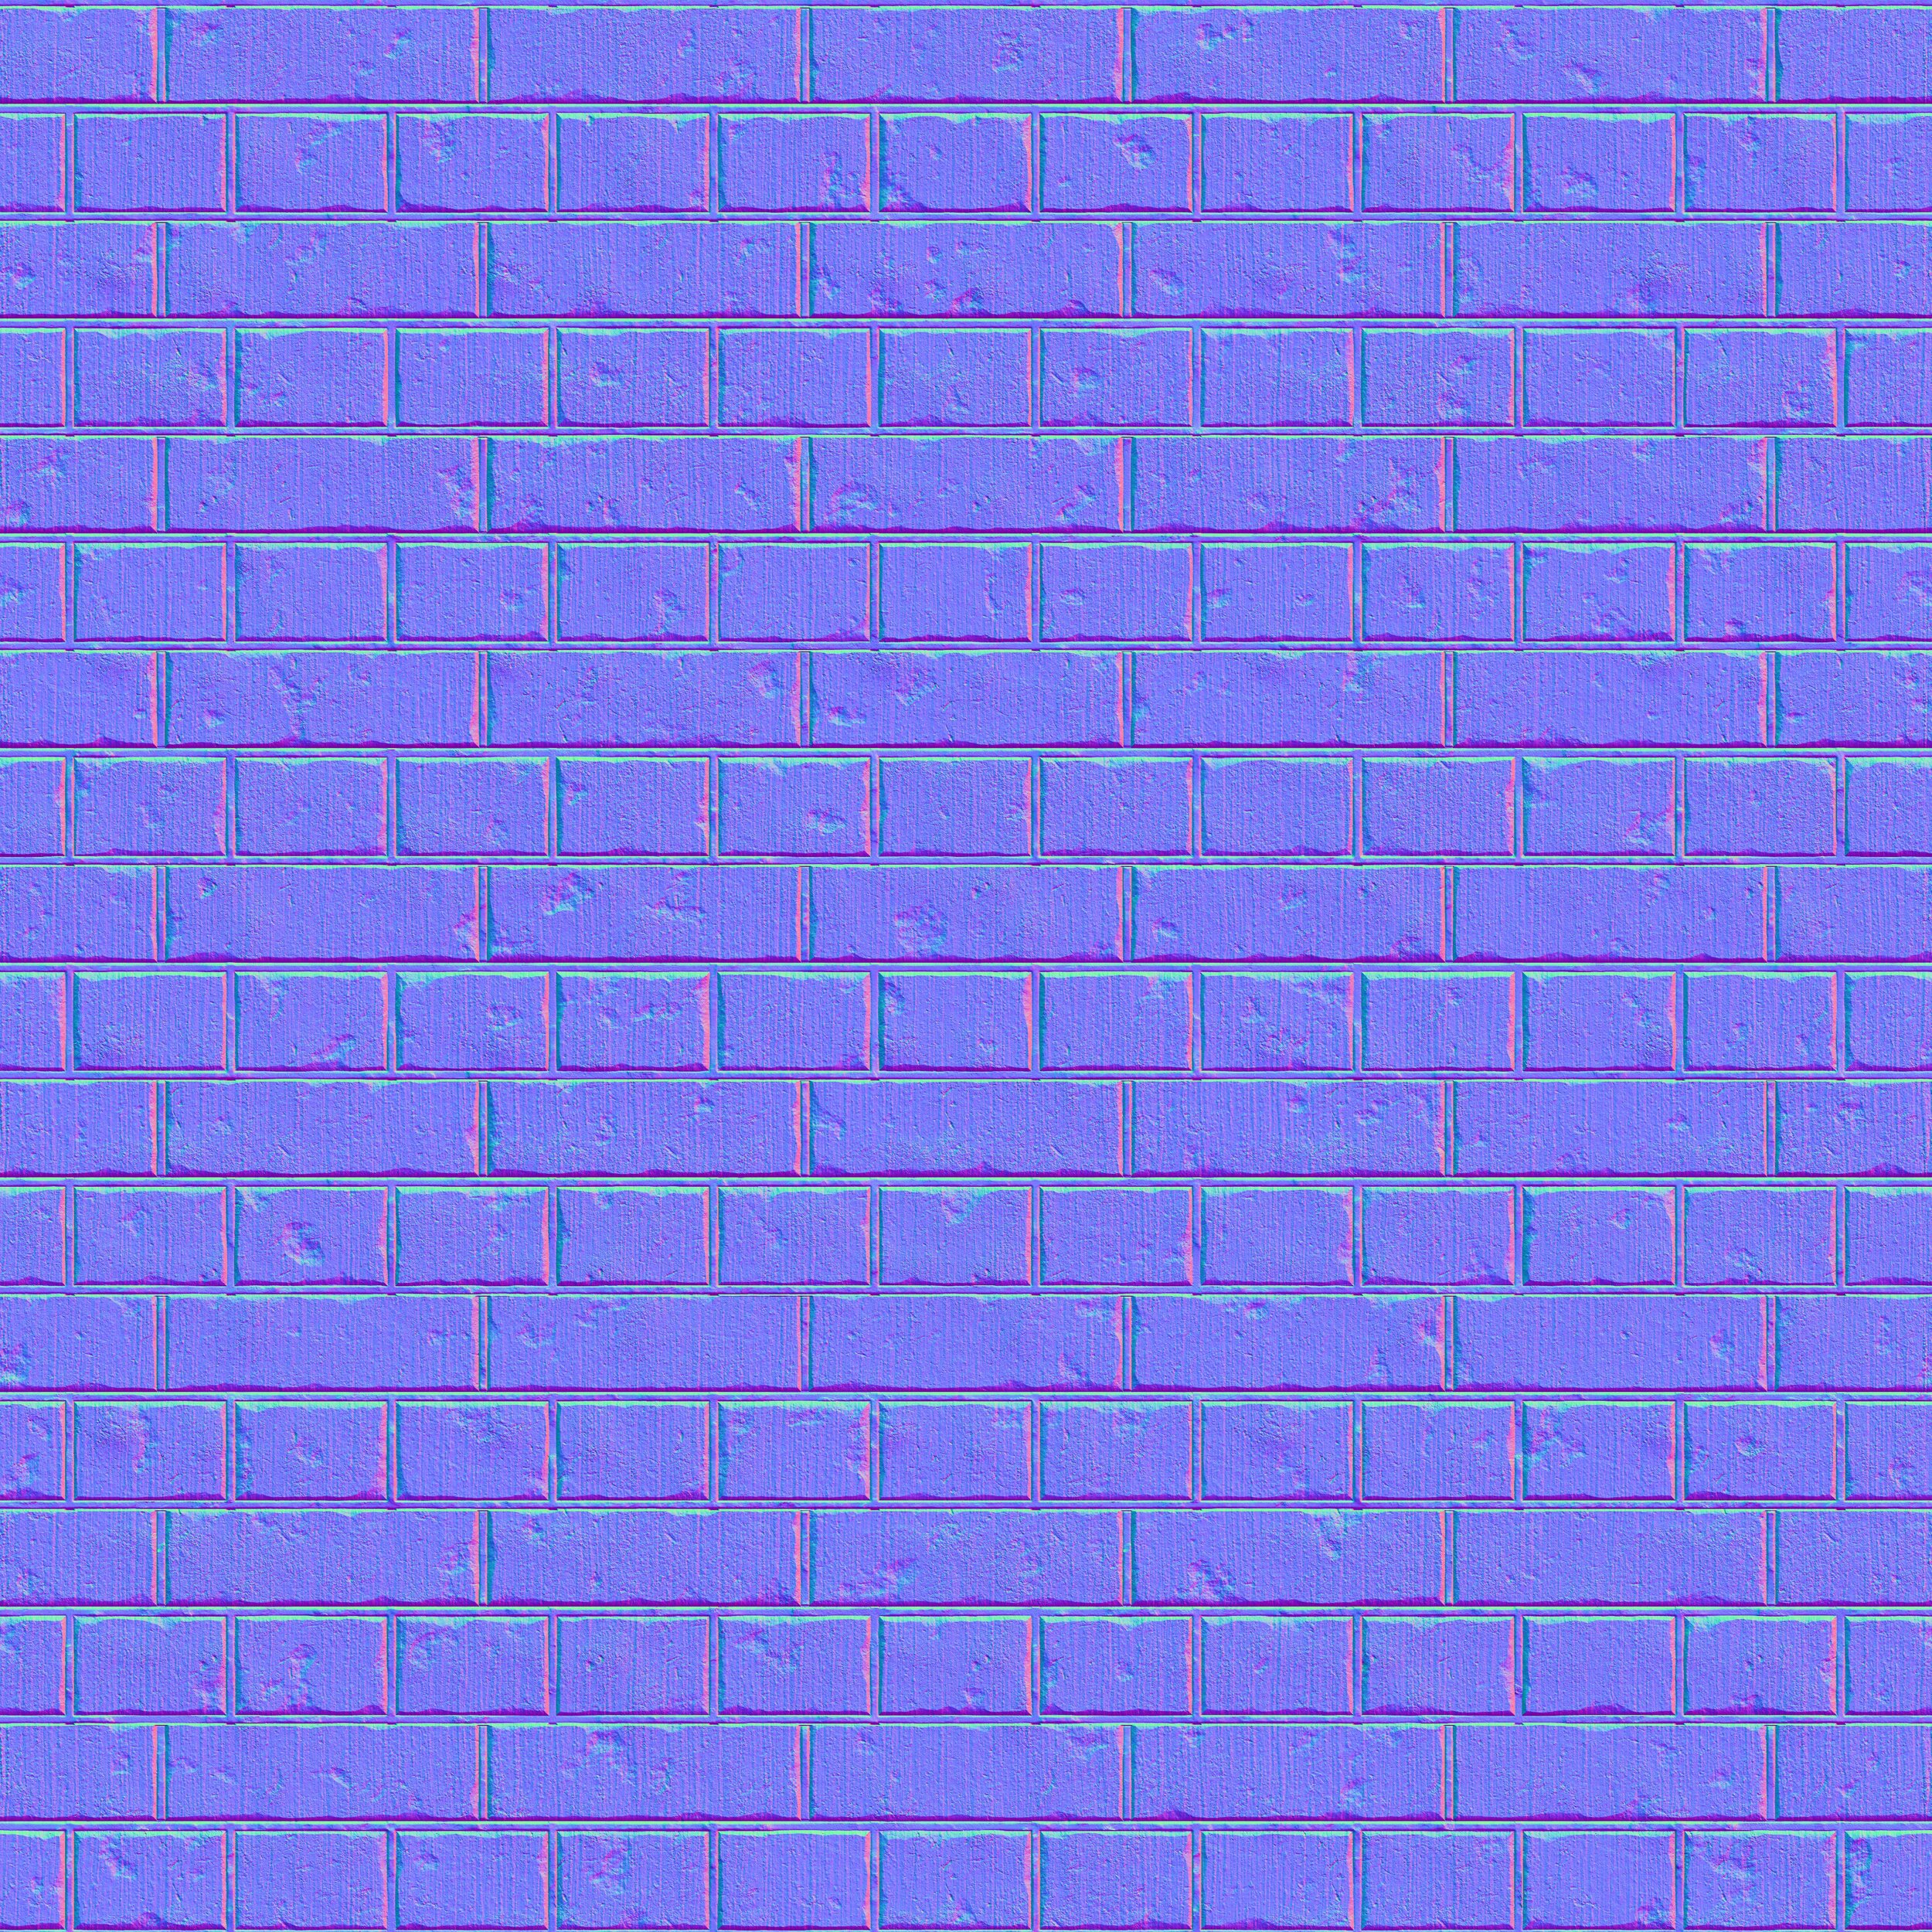 Bricks_AI_01C_Gray_NRM.jpg